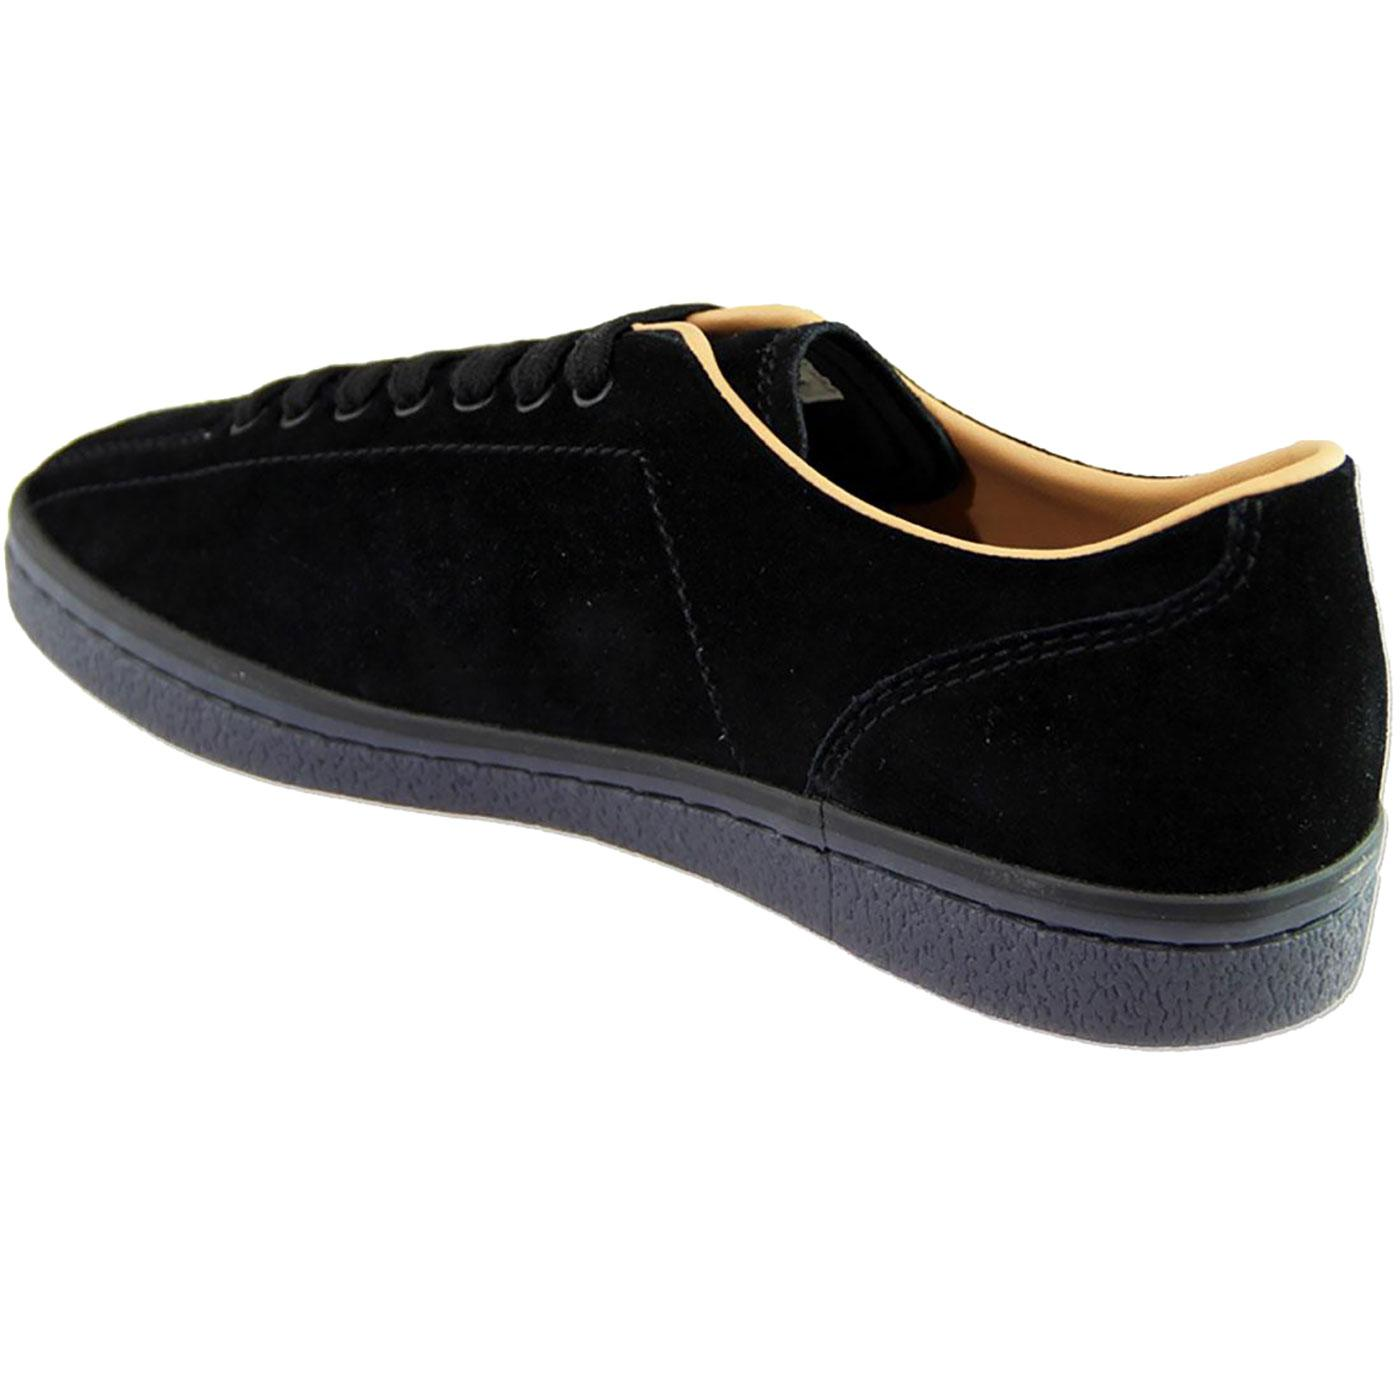 Stamford FRED PERRY Suede Bowling Shoes Trainers